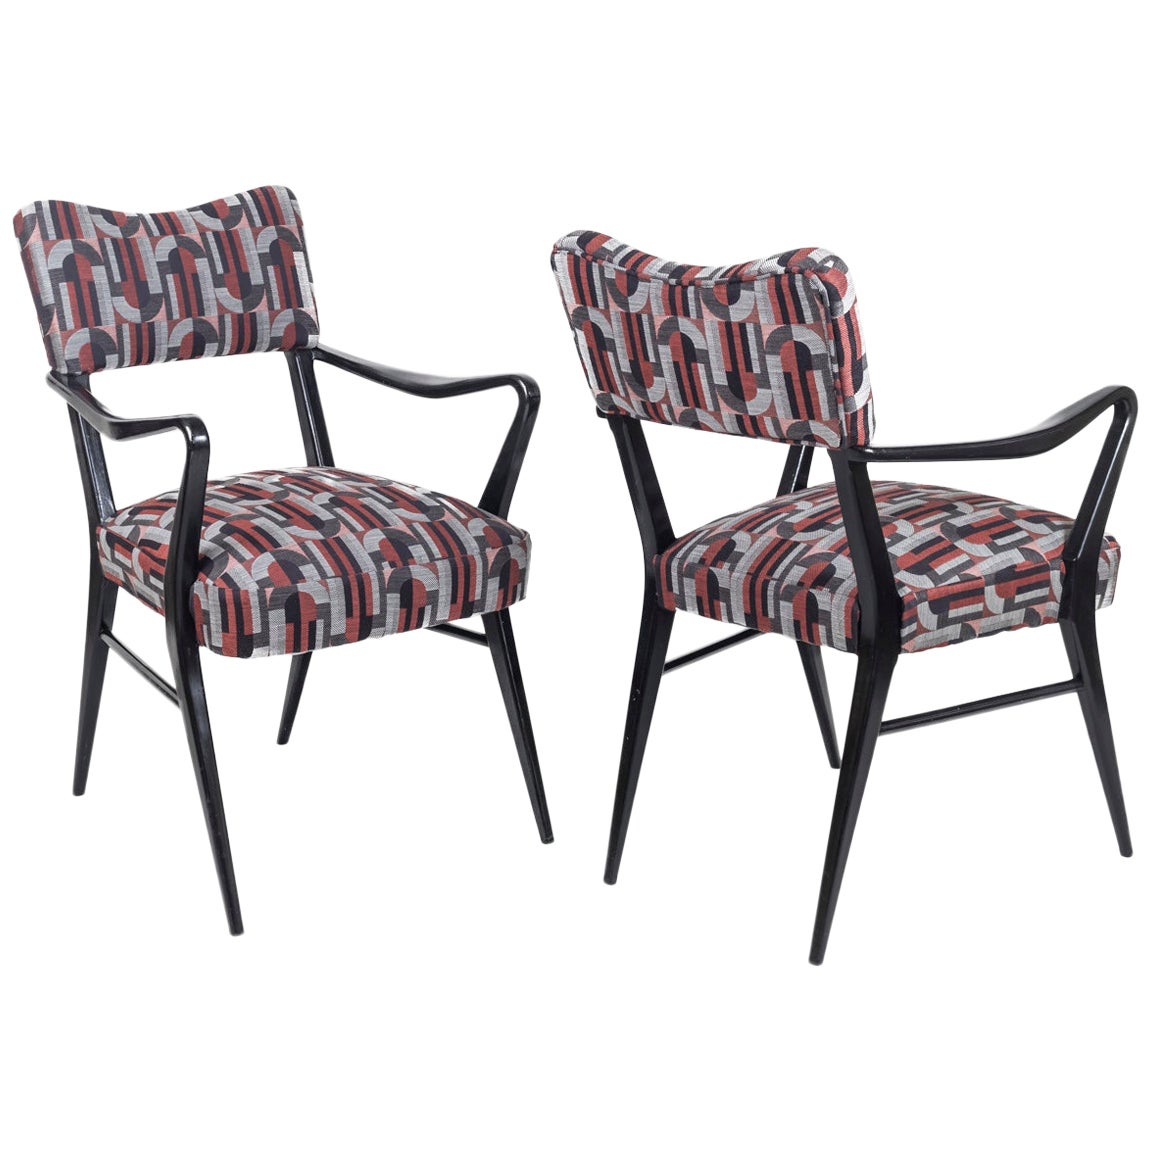 Pair of Armchairs in Black Lacquered Wood, 1970s